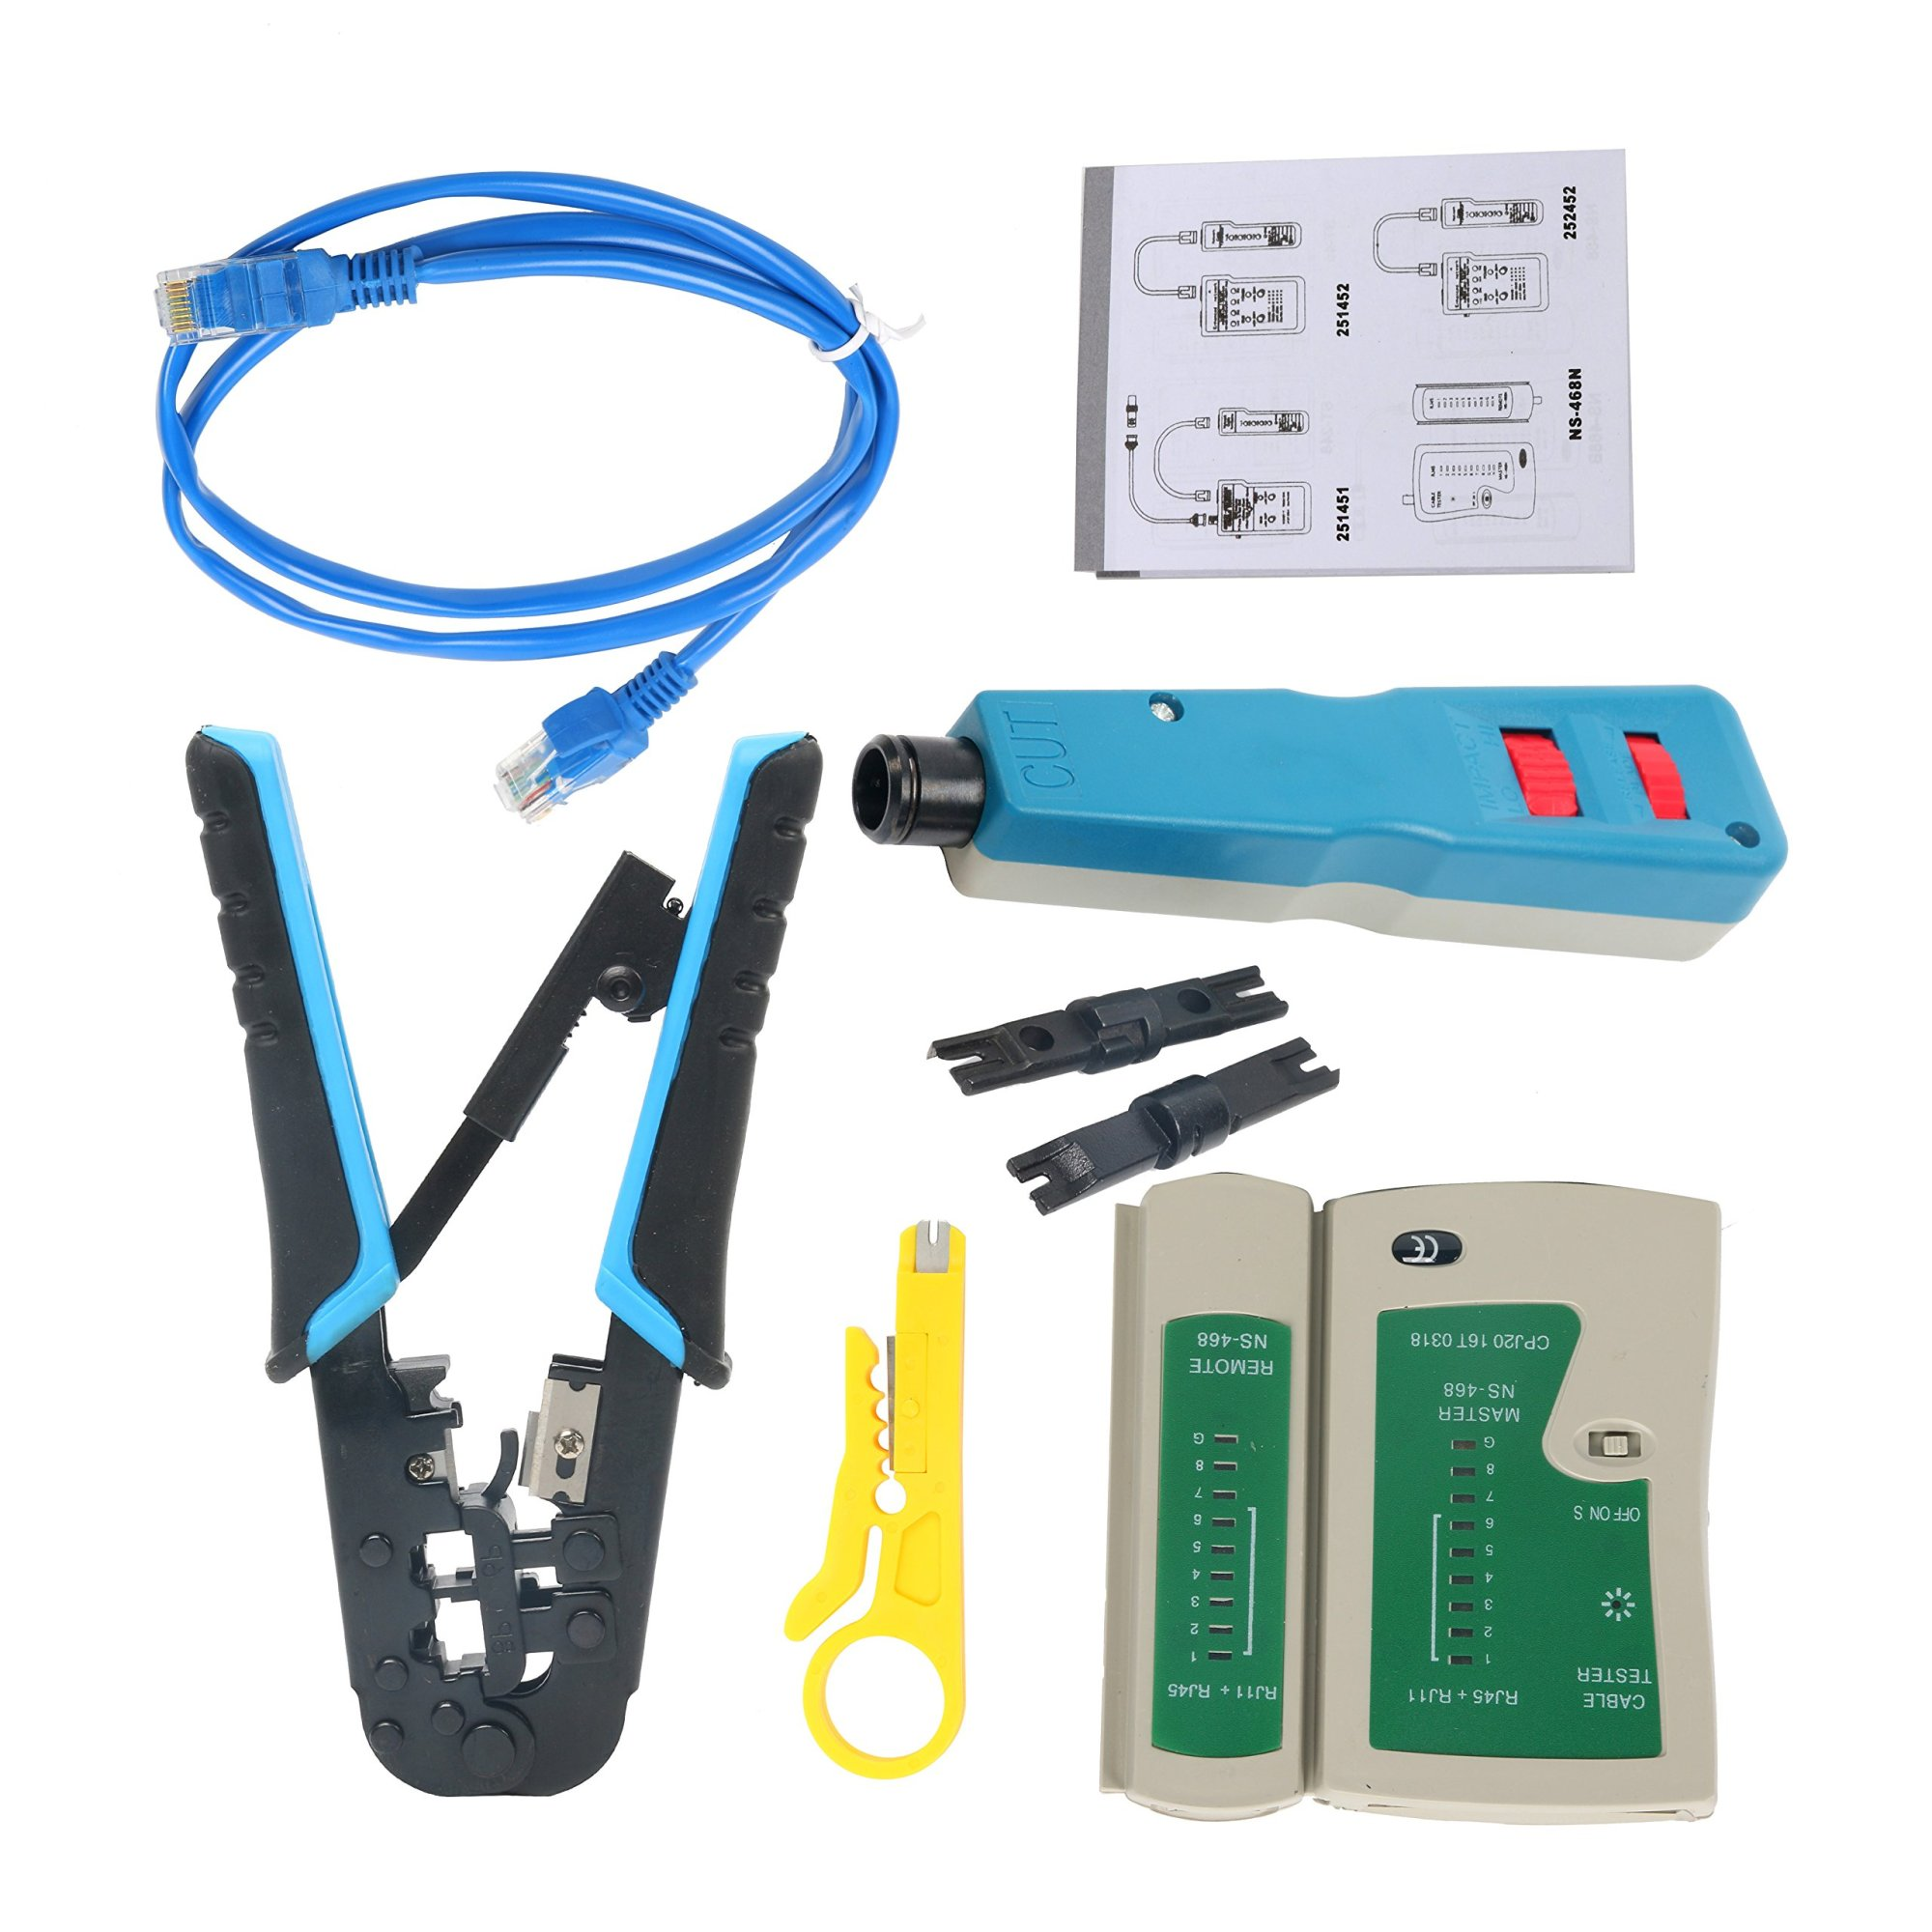 hight resolution of get quotations yaetek ethernet network tool kit network wire impact punch down tool cable connectors crimper